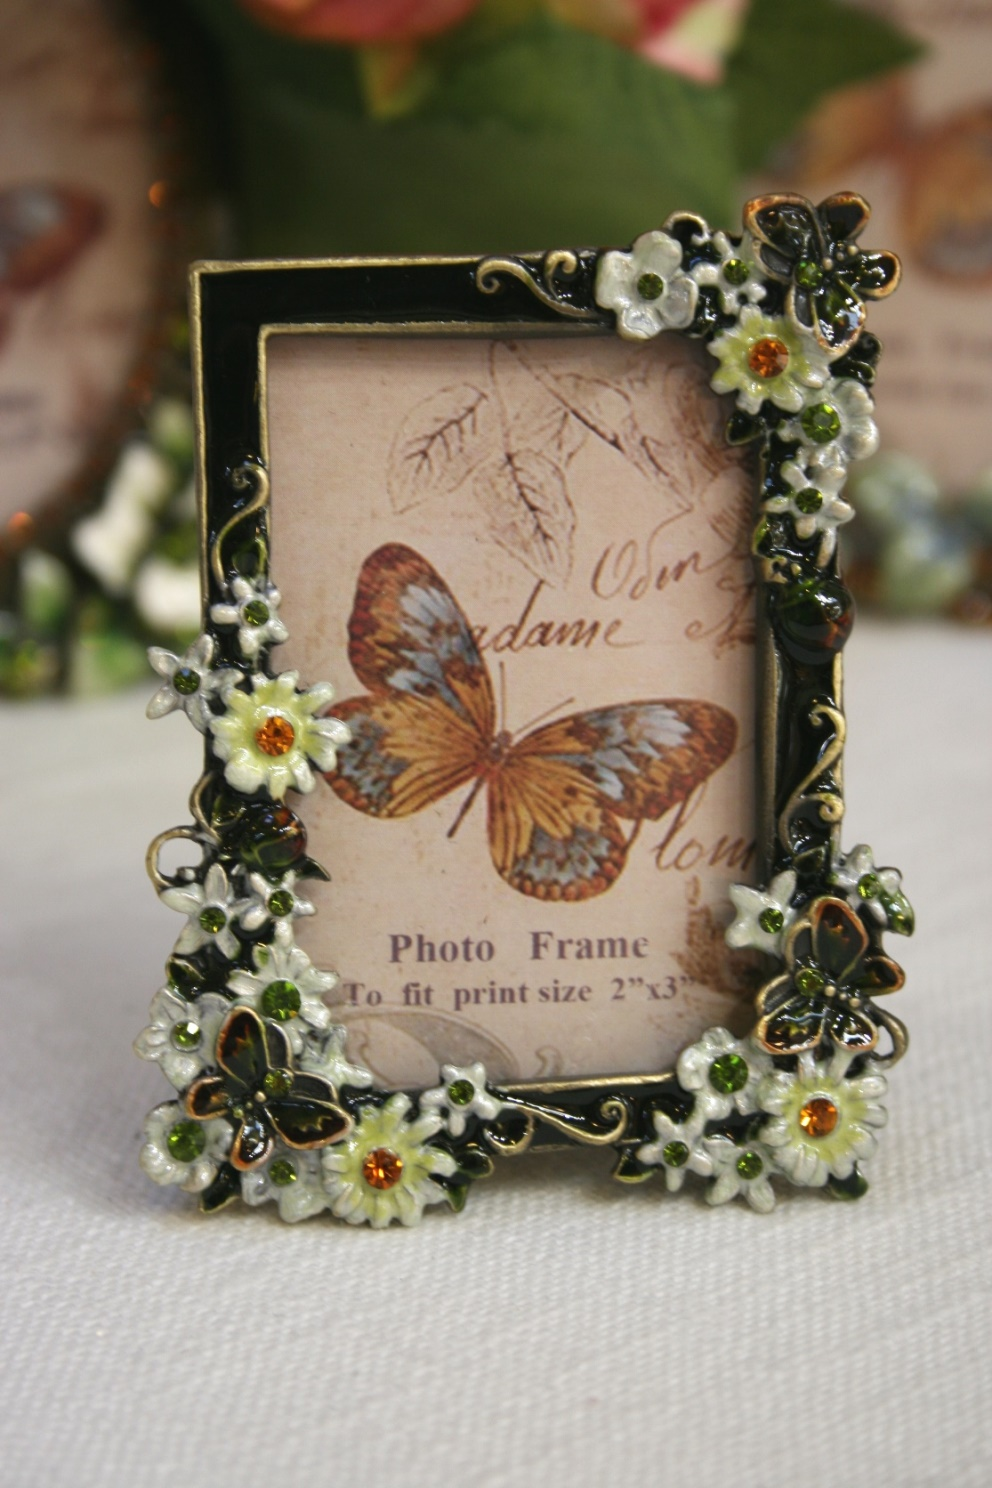 Bejewelled Small Rectangular Frame €12.50